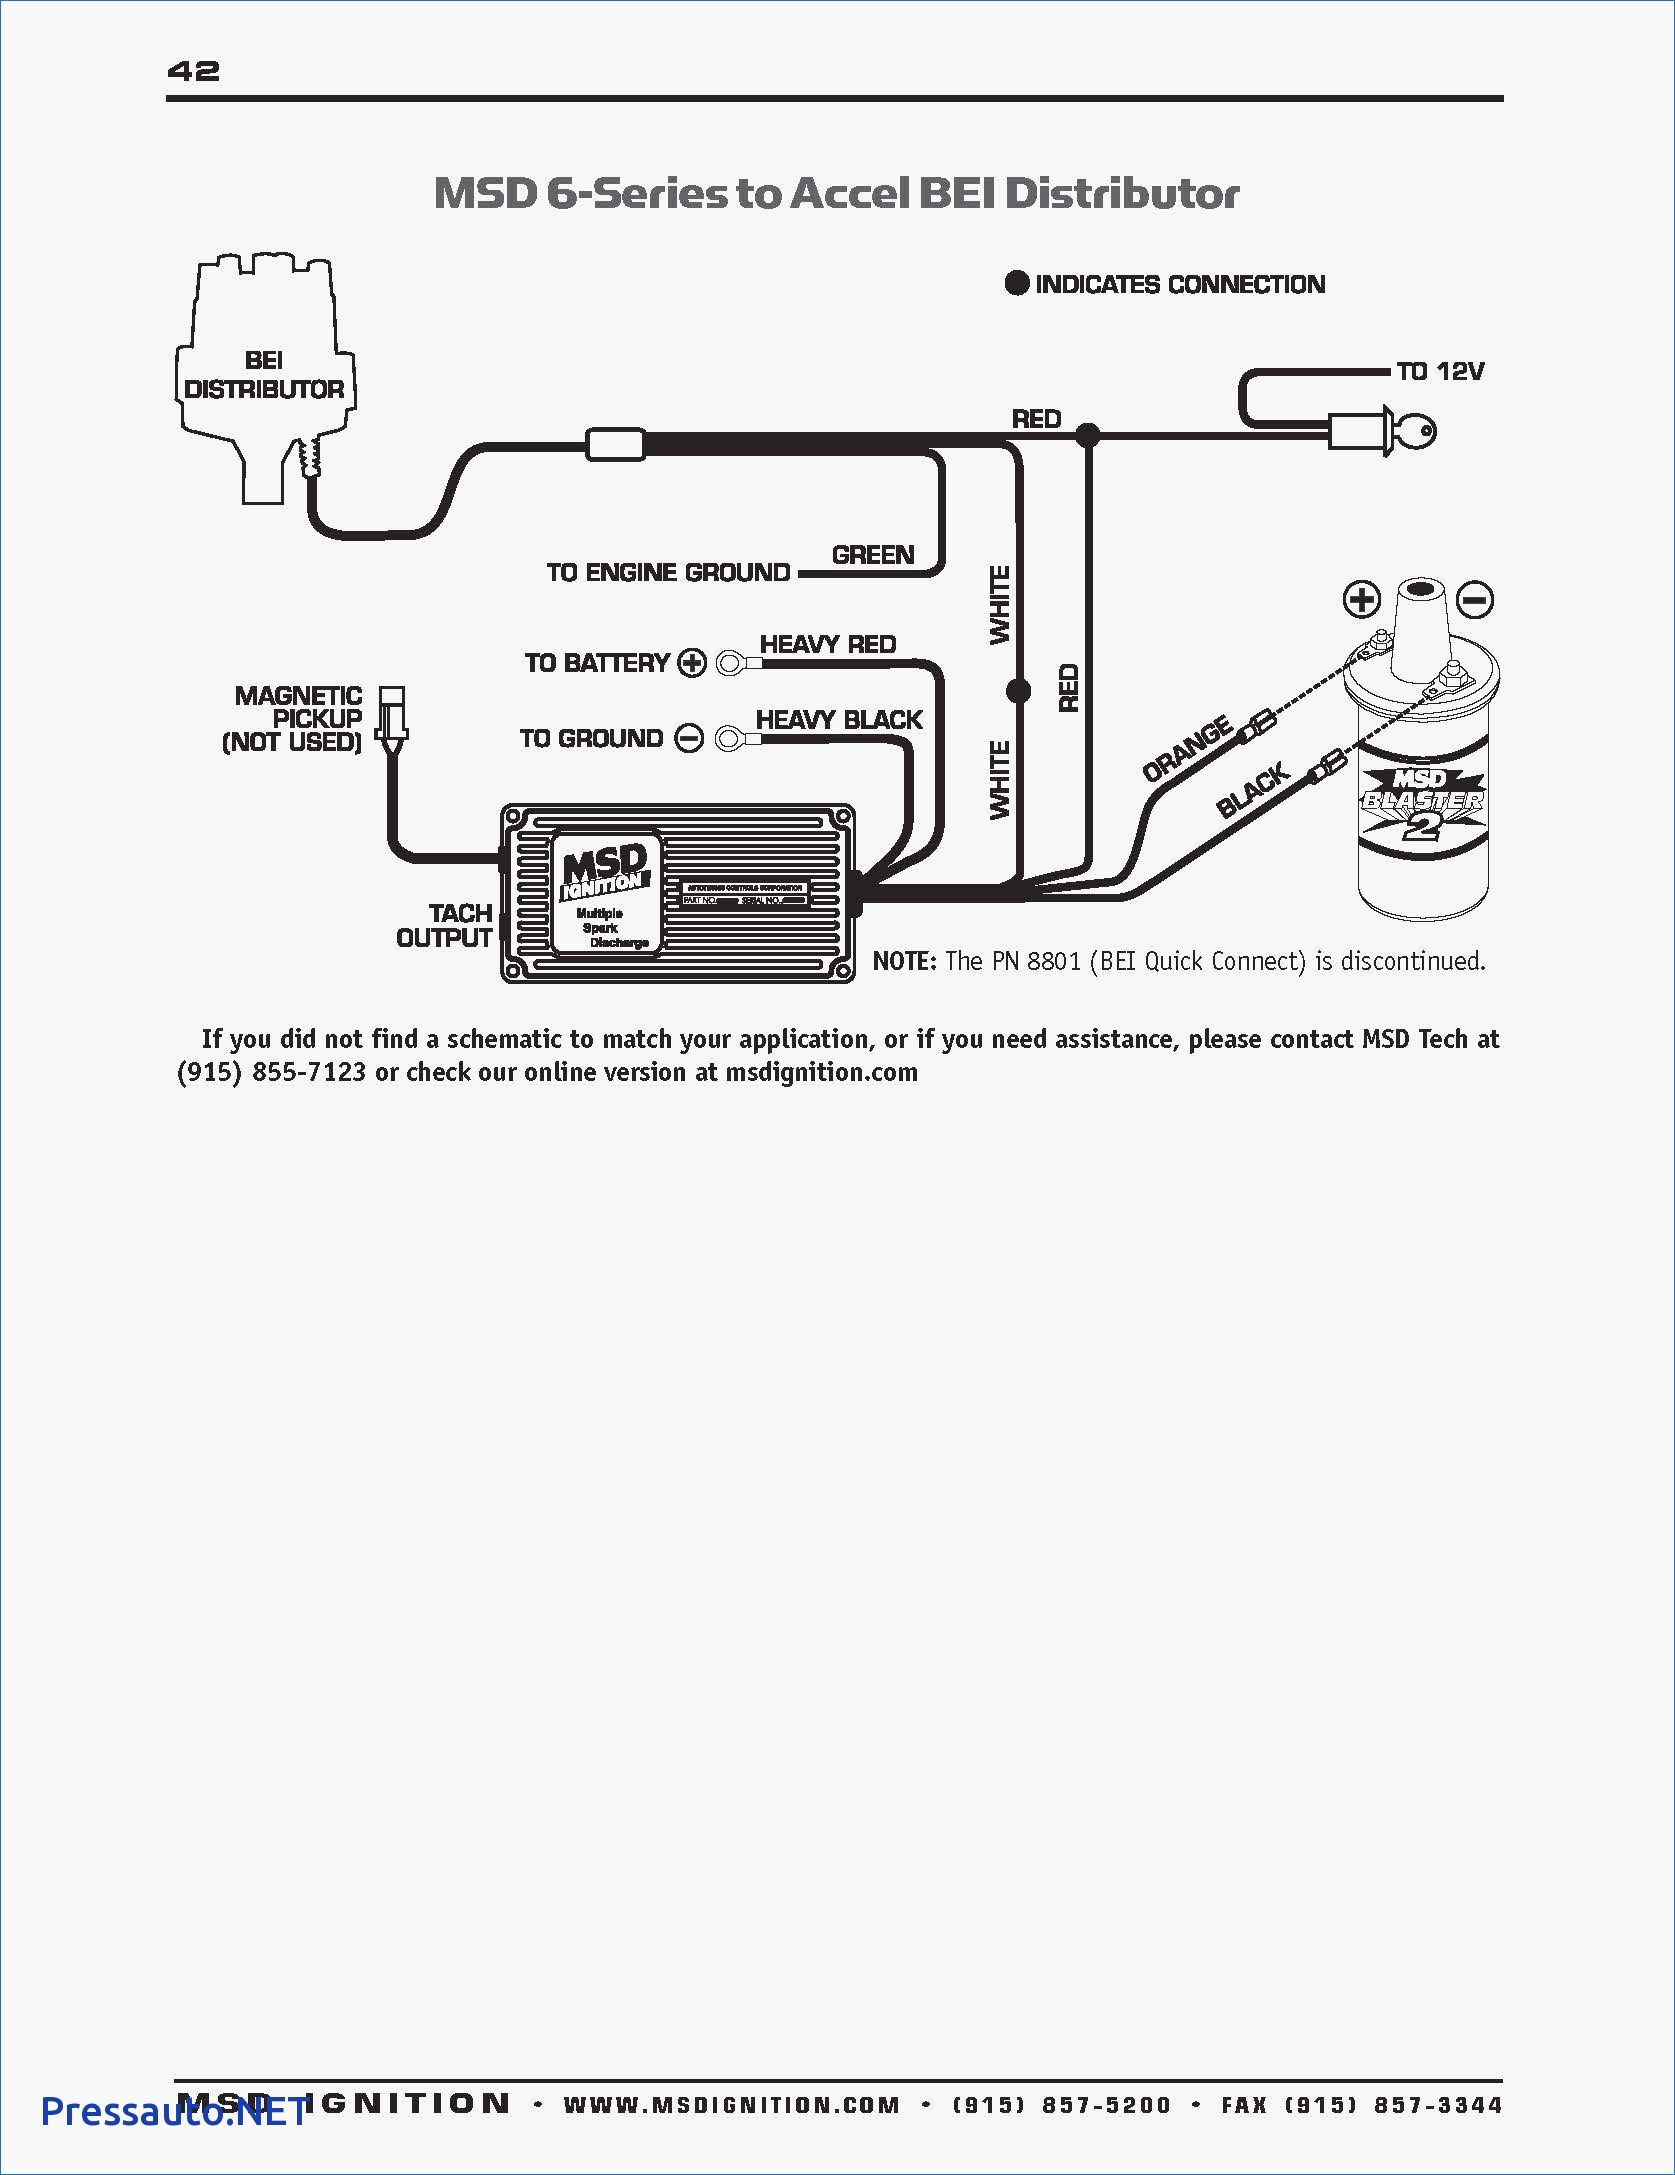 Diagram Dodge Ignition Module Wiring Diagram Full Version Hd Quality Wiring Diagram Wiringklang2f Atuttasosta It